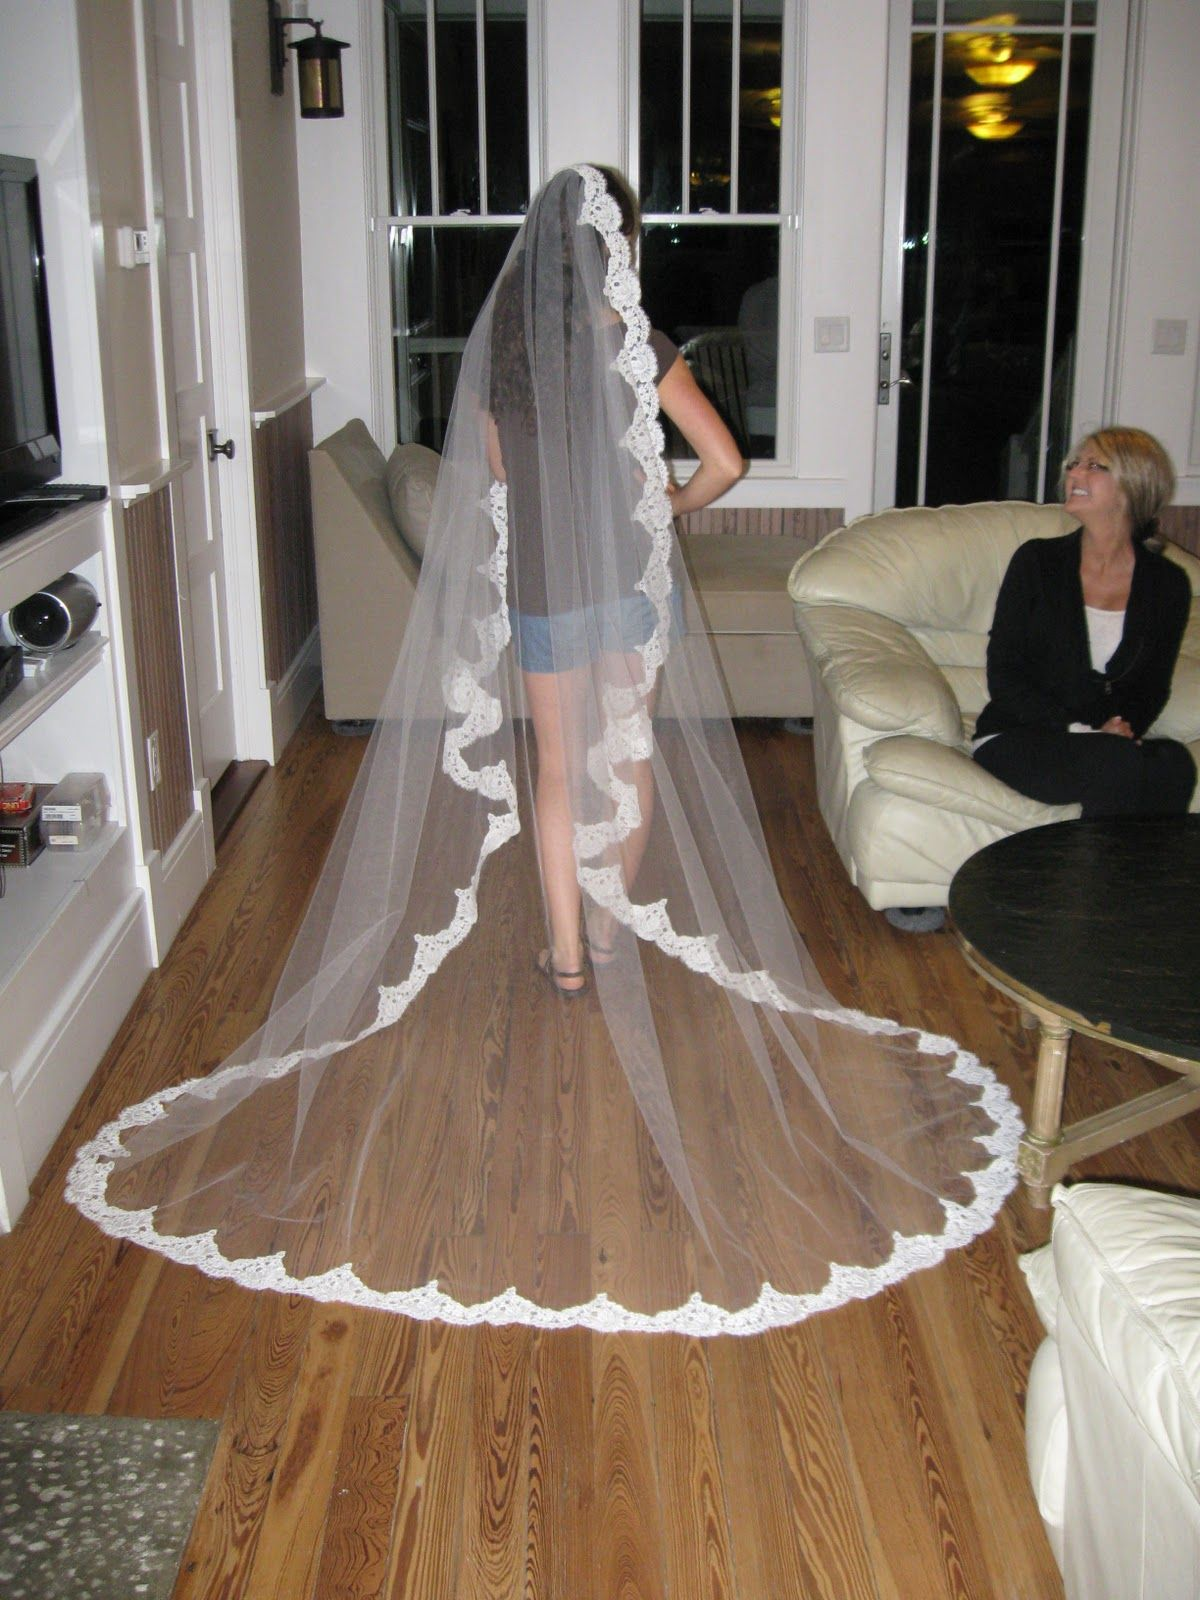 Diy Wedding Veil.Bean In Love Tulle Lace And Two Sisters Baby Baby Baby Diy